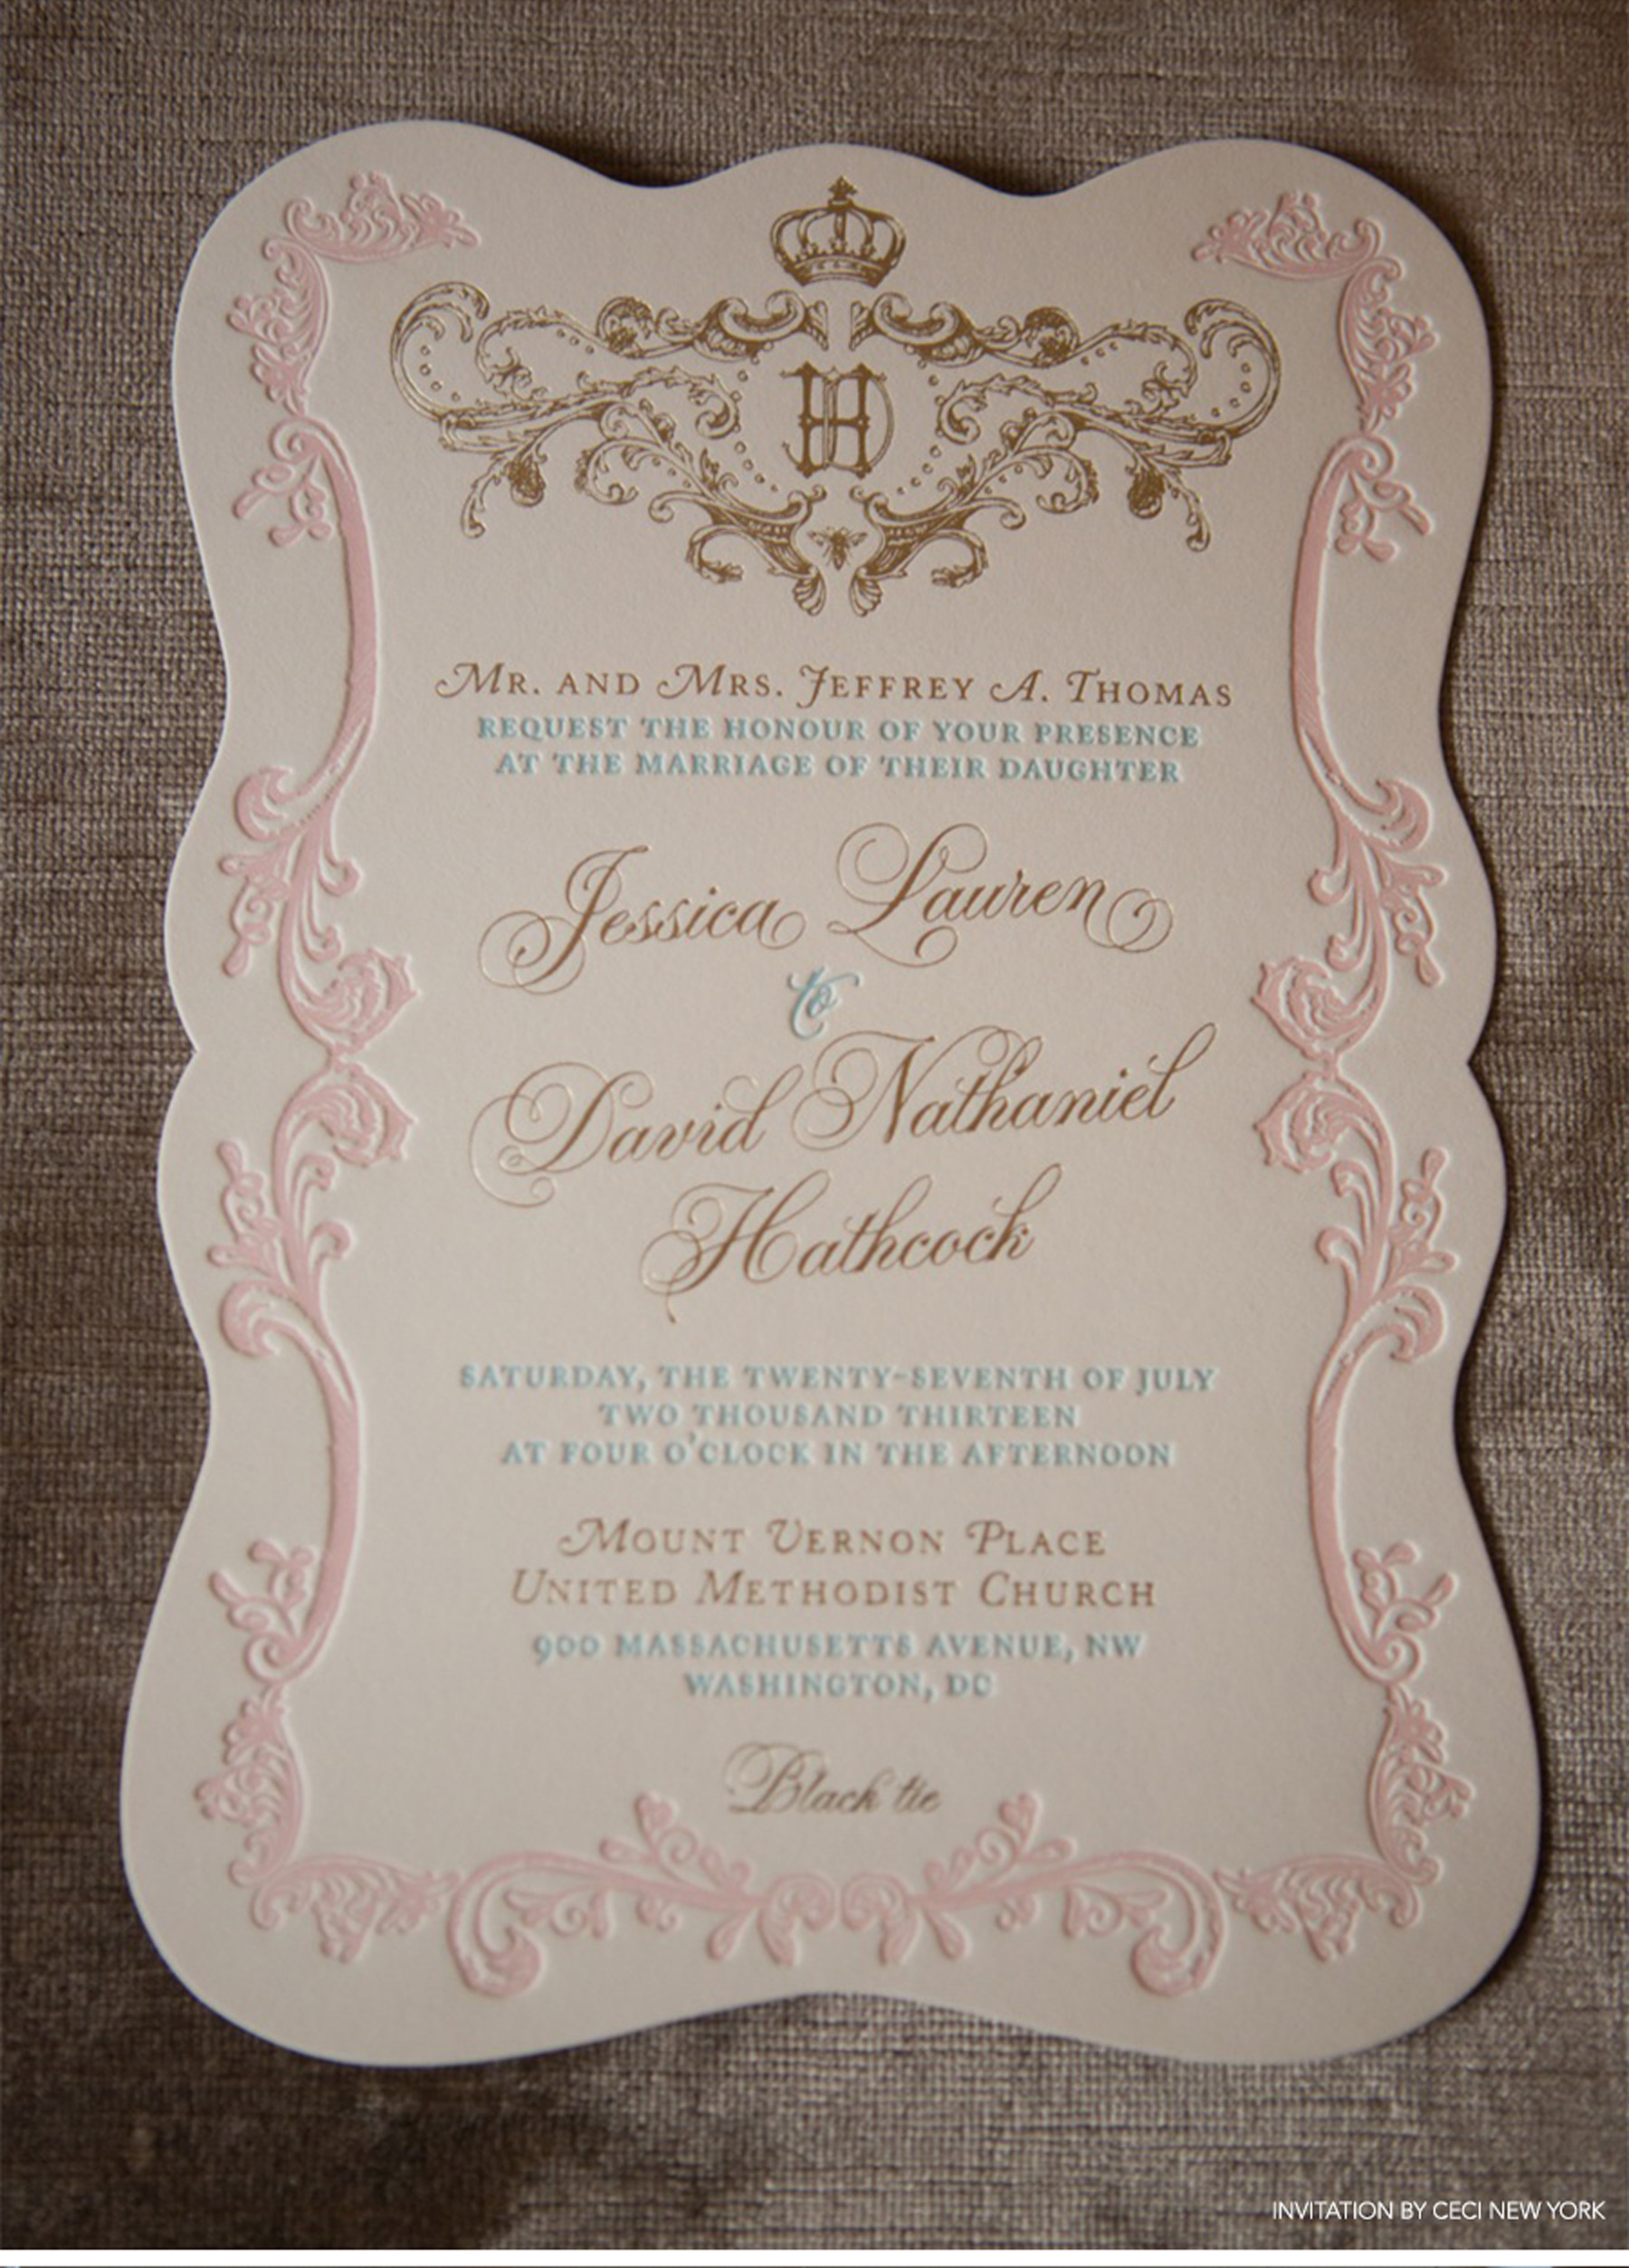 ivory and gold wedding invitations blush wedding invitations Ivory And Gold Wedding Invitations is adorable invitations example